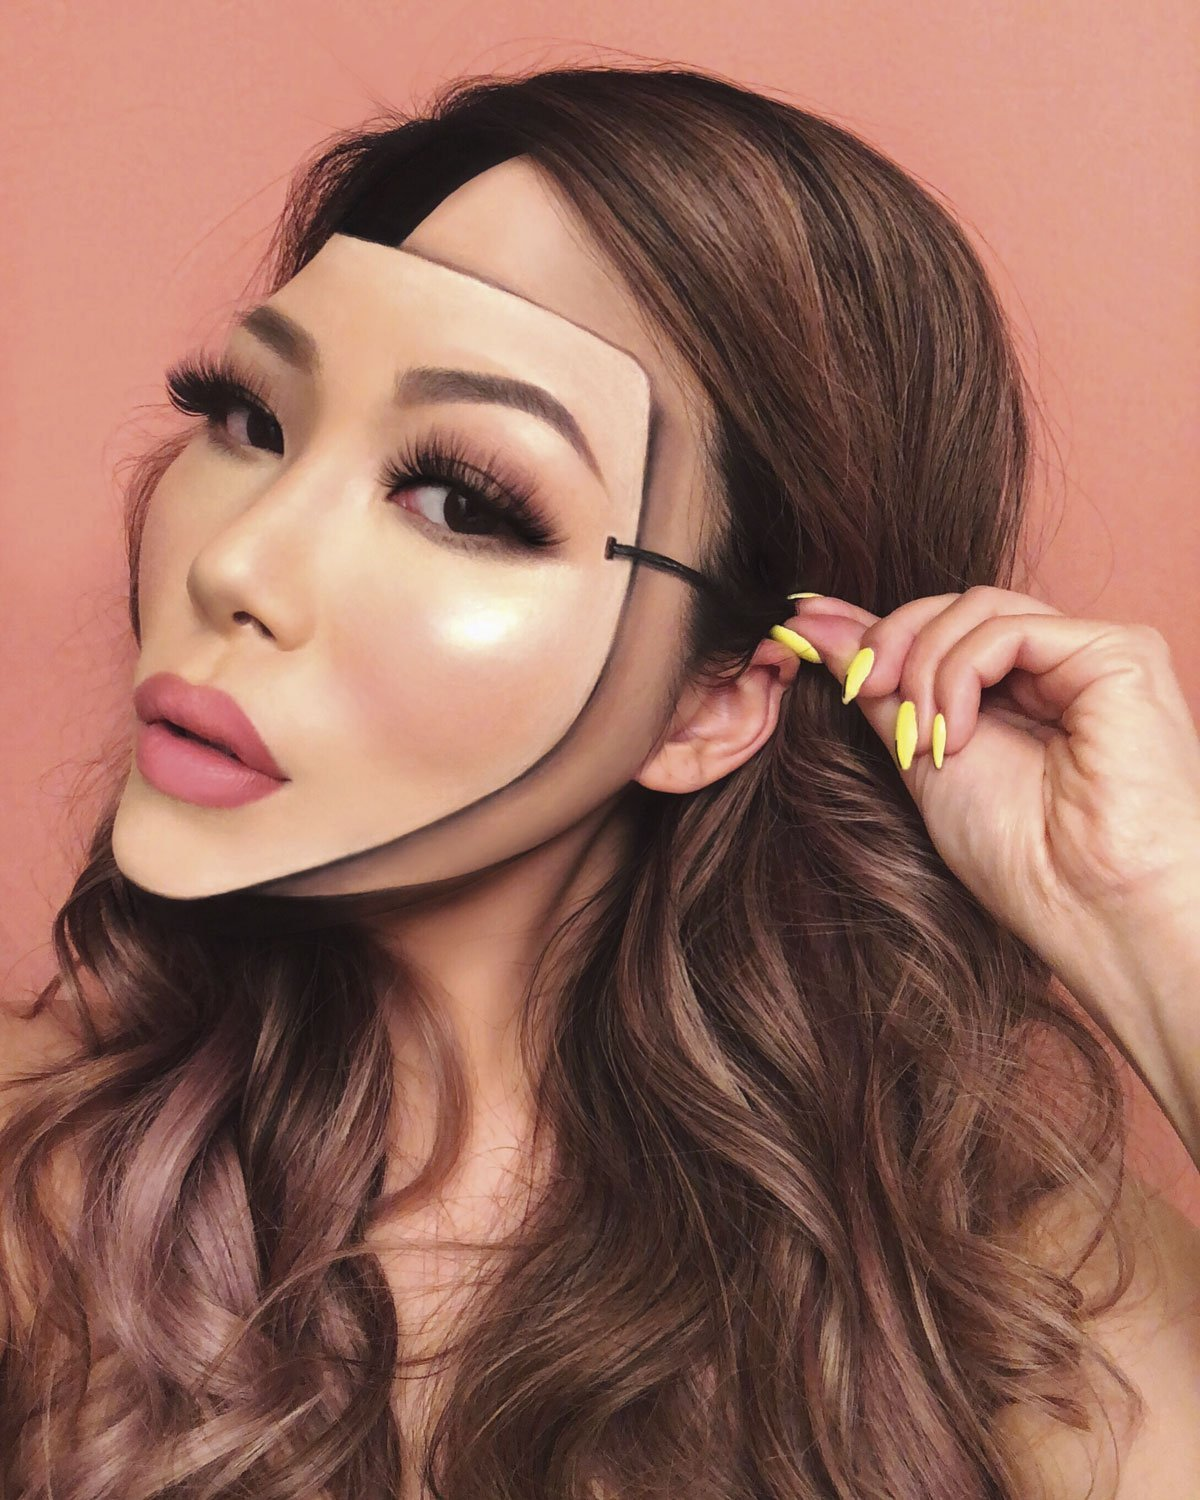 Maquillaje extremo